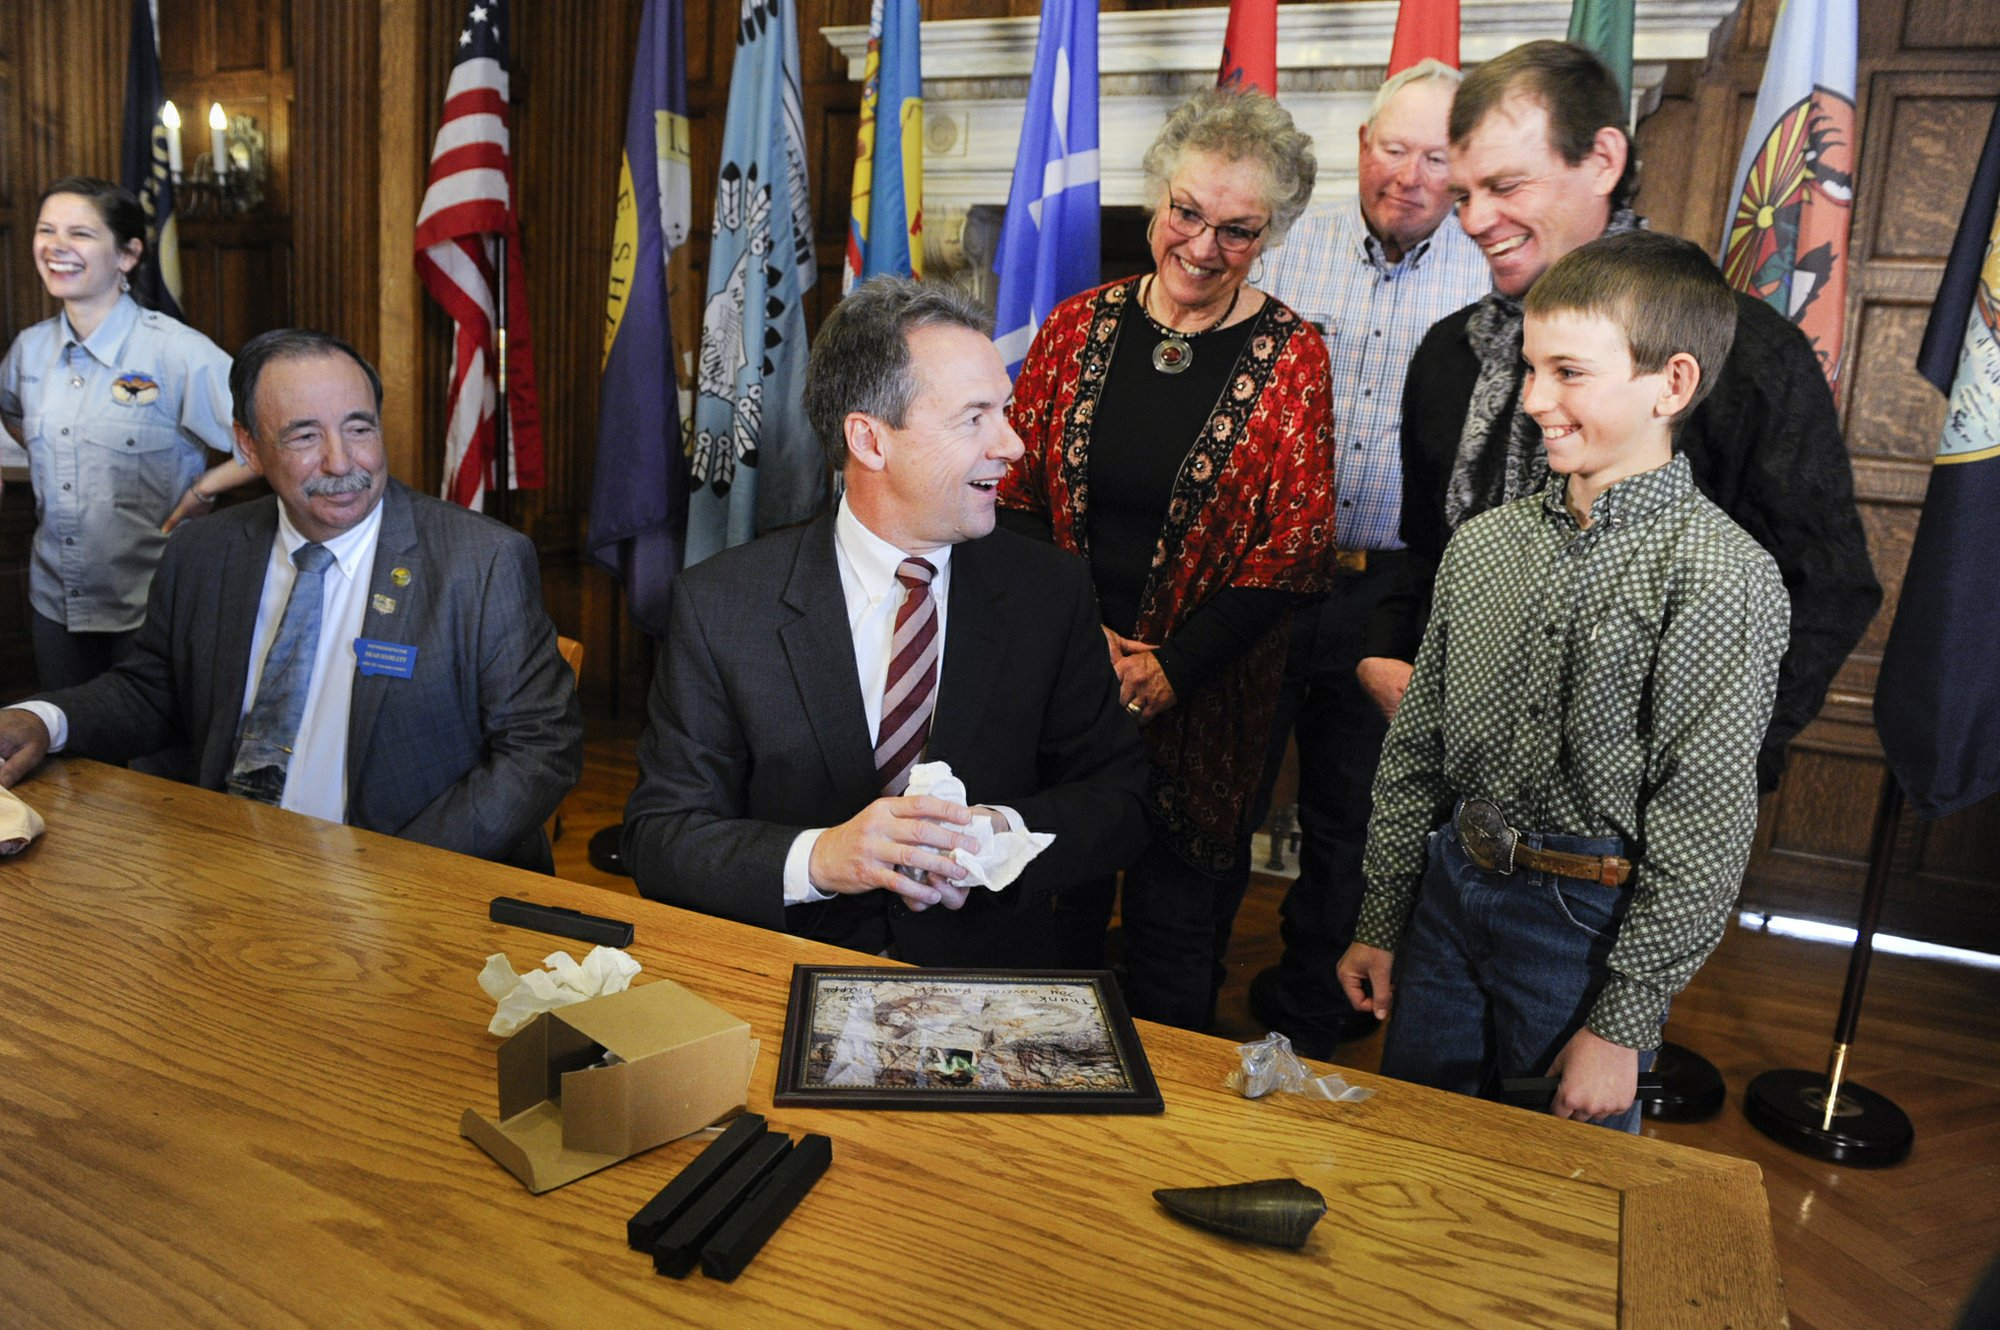 Governor signs bill clarifying ownership rights to fossils